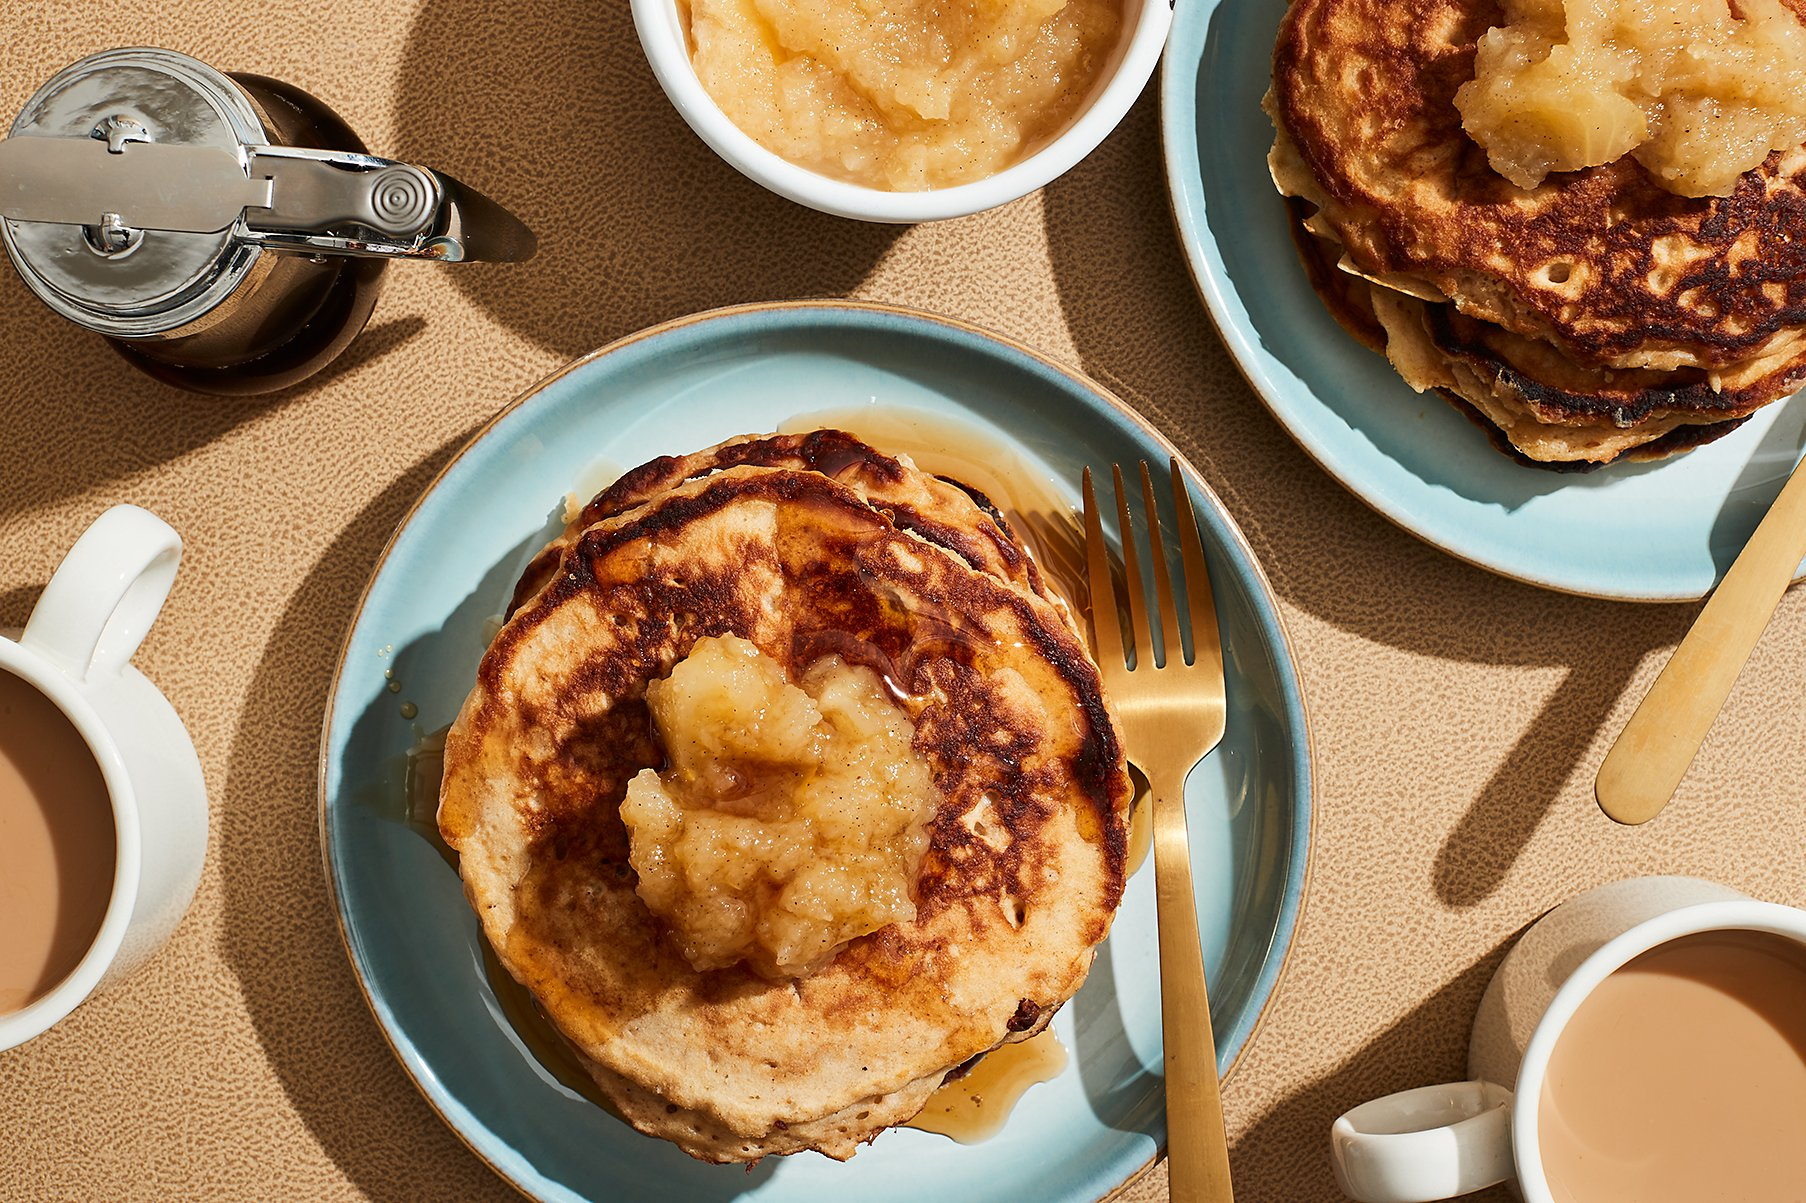 Small stack of applesauce pancakes on a round, light blue plate